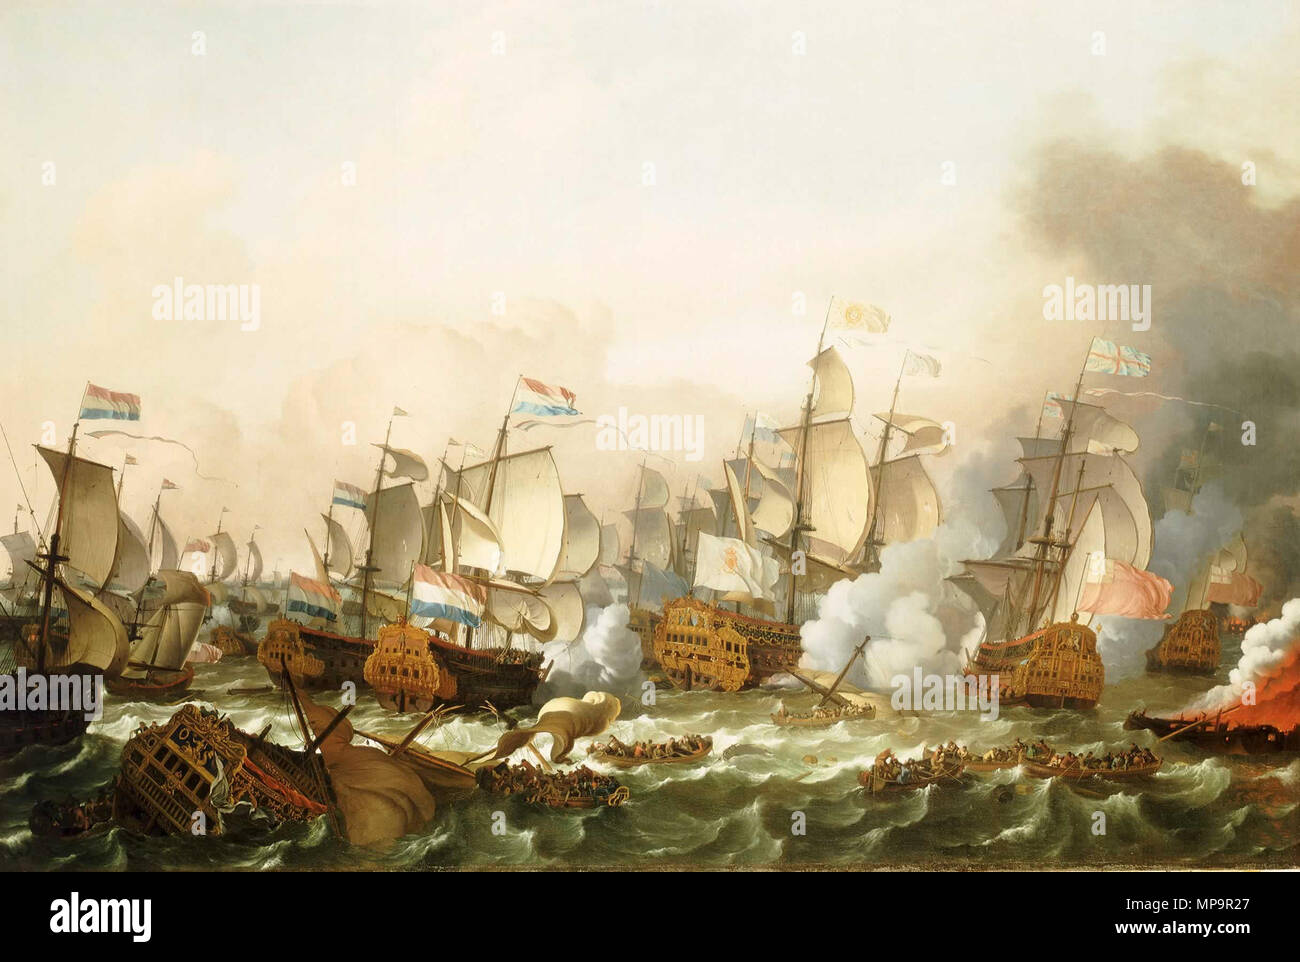 English: The Battle of Barfleur, 19 May 1692 Deutsch: Seeschlacht bei Barfleur 1692 .  English: Early in 1692, James II was at Cherbourg, preparing to re-invade England with French help. On 17 May the French fleet sailed from Brest and were attacked by a superior Anglo-Dutch force under Admiral Russell, off Cape Barfleur. The French escaped but a few days later the allies burnt three of their ships including their flagship the 'Soleil Royal', 104 guns, in Cherbourg Bay. On 23-24 May, James II saw 12 more French ships and most of his transports burnt in the Bay of La Hogue. This ended all real  - Stock Image